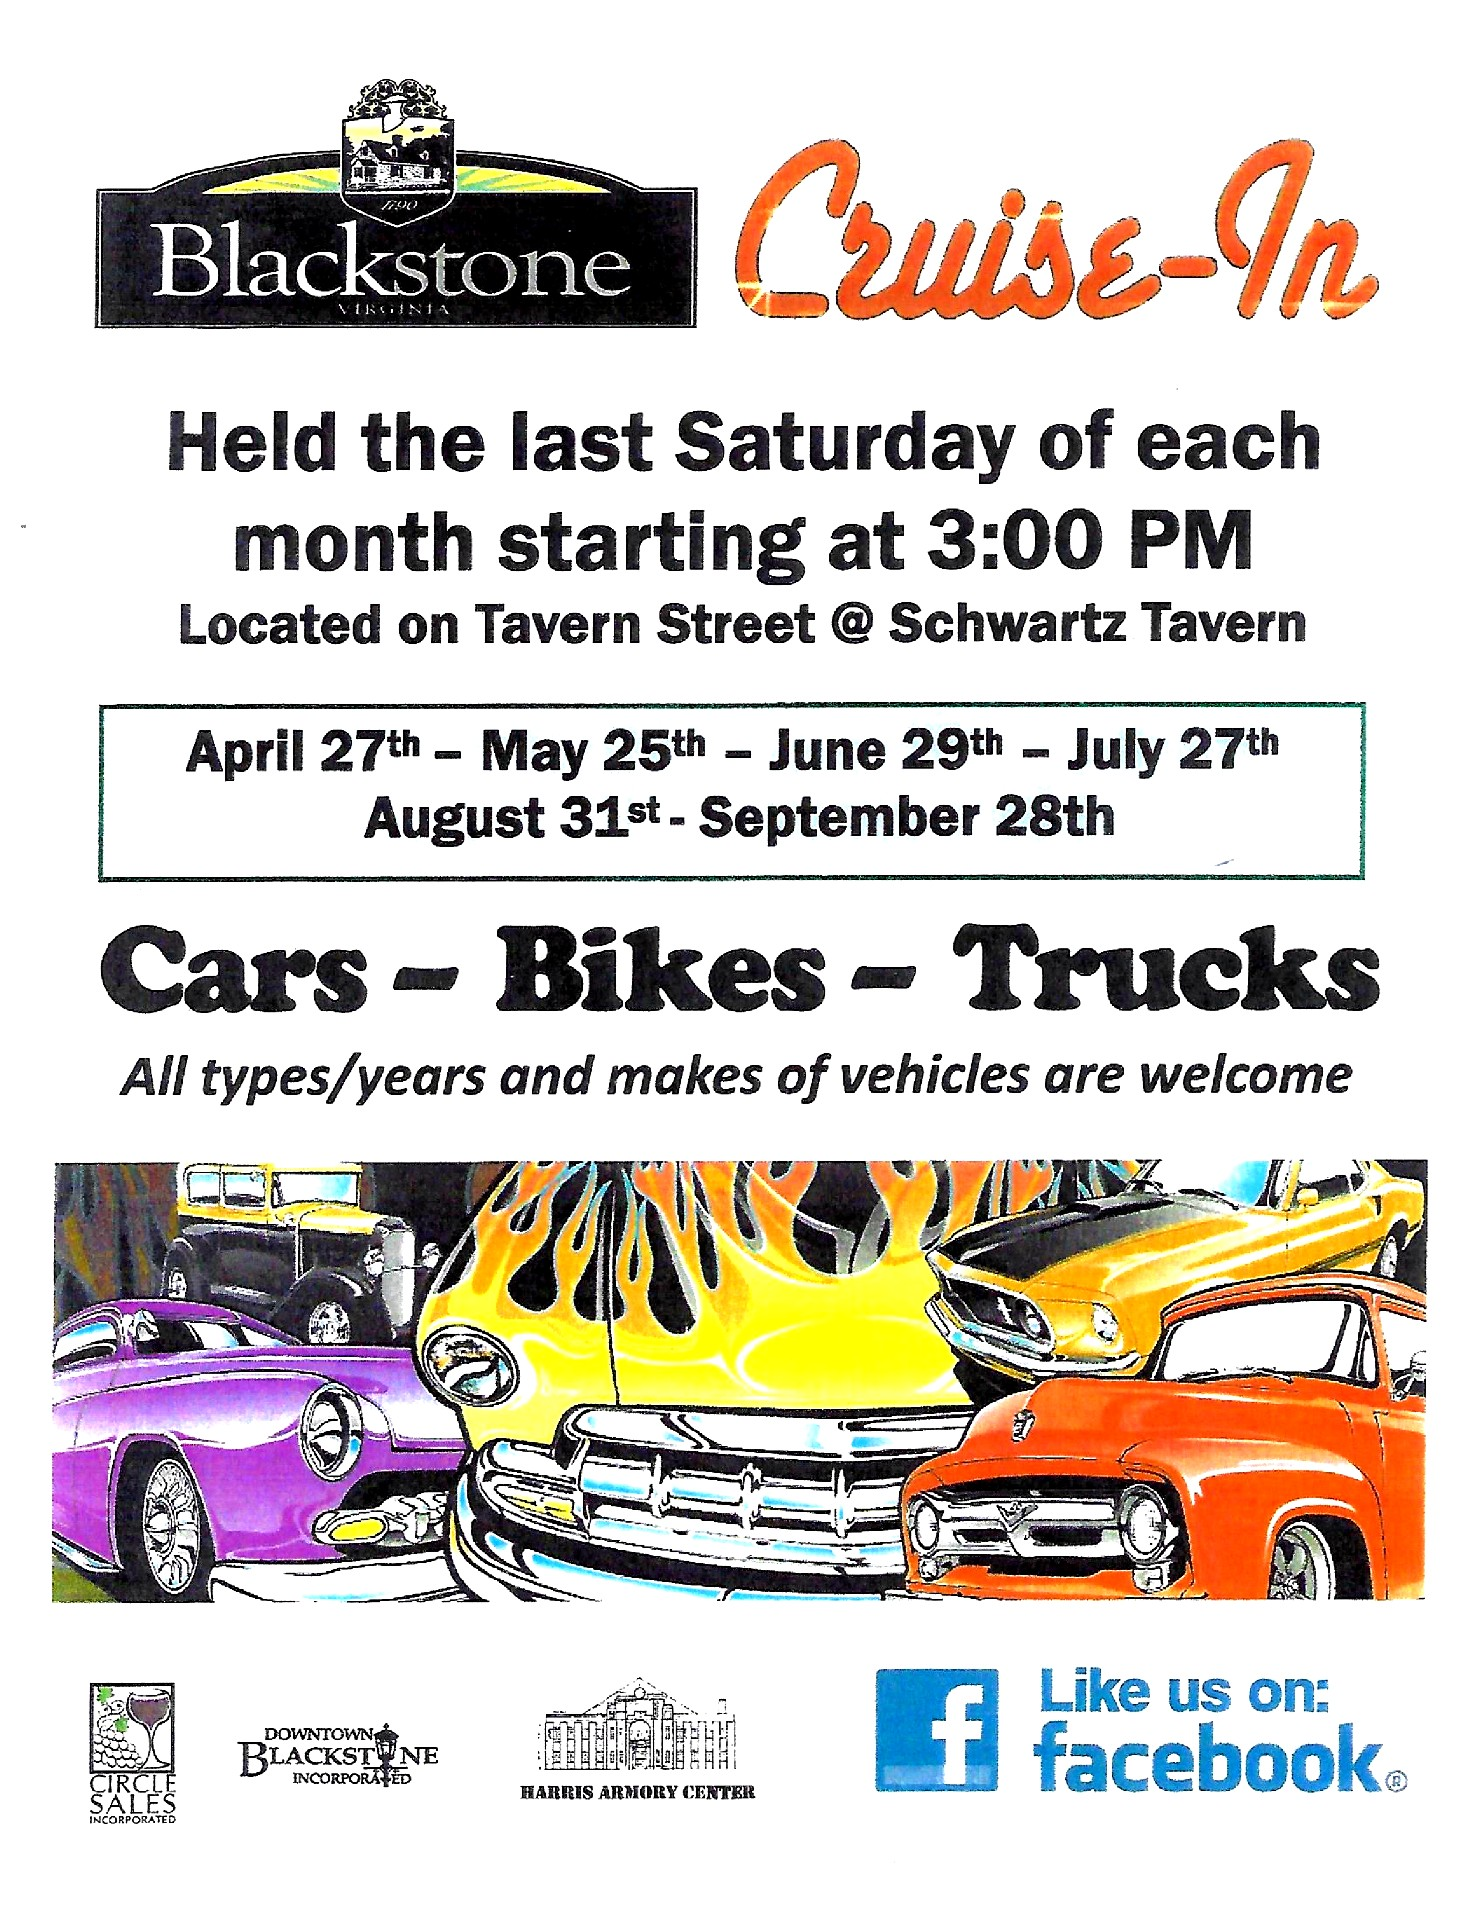 Blackstone Cruise-In is Back